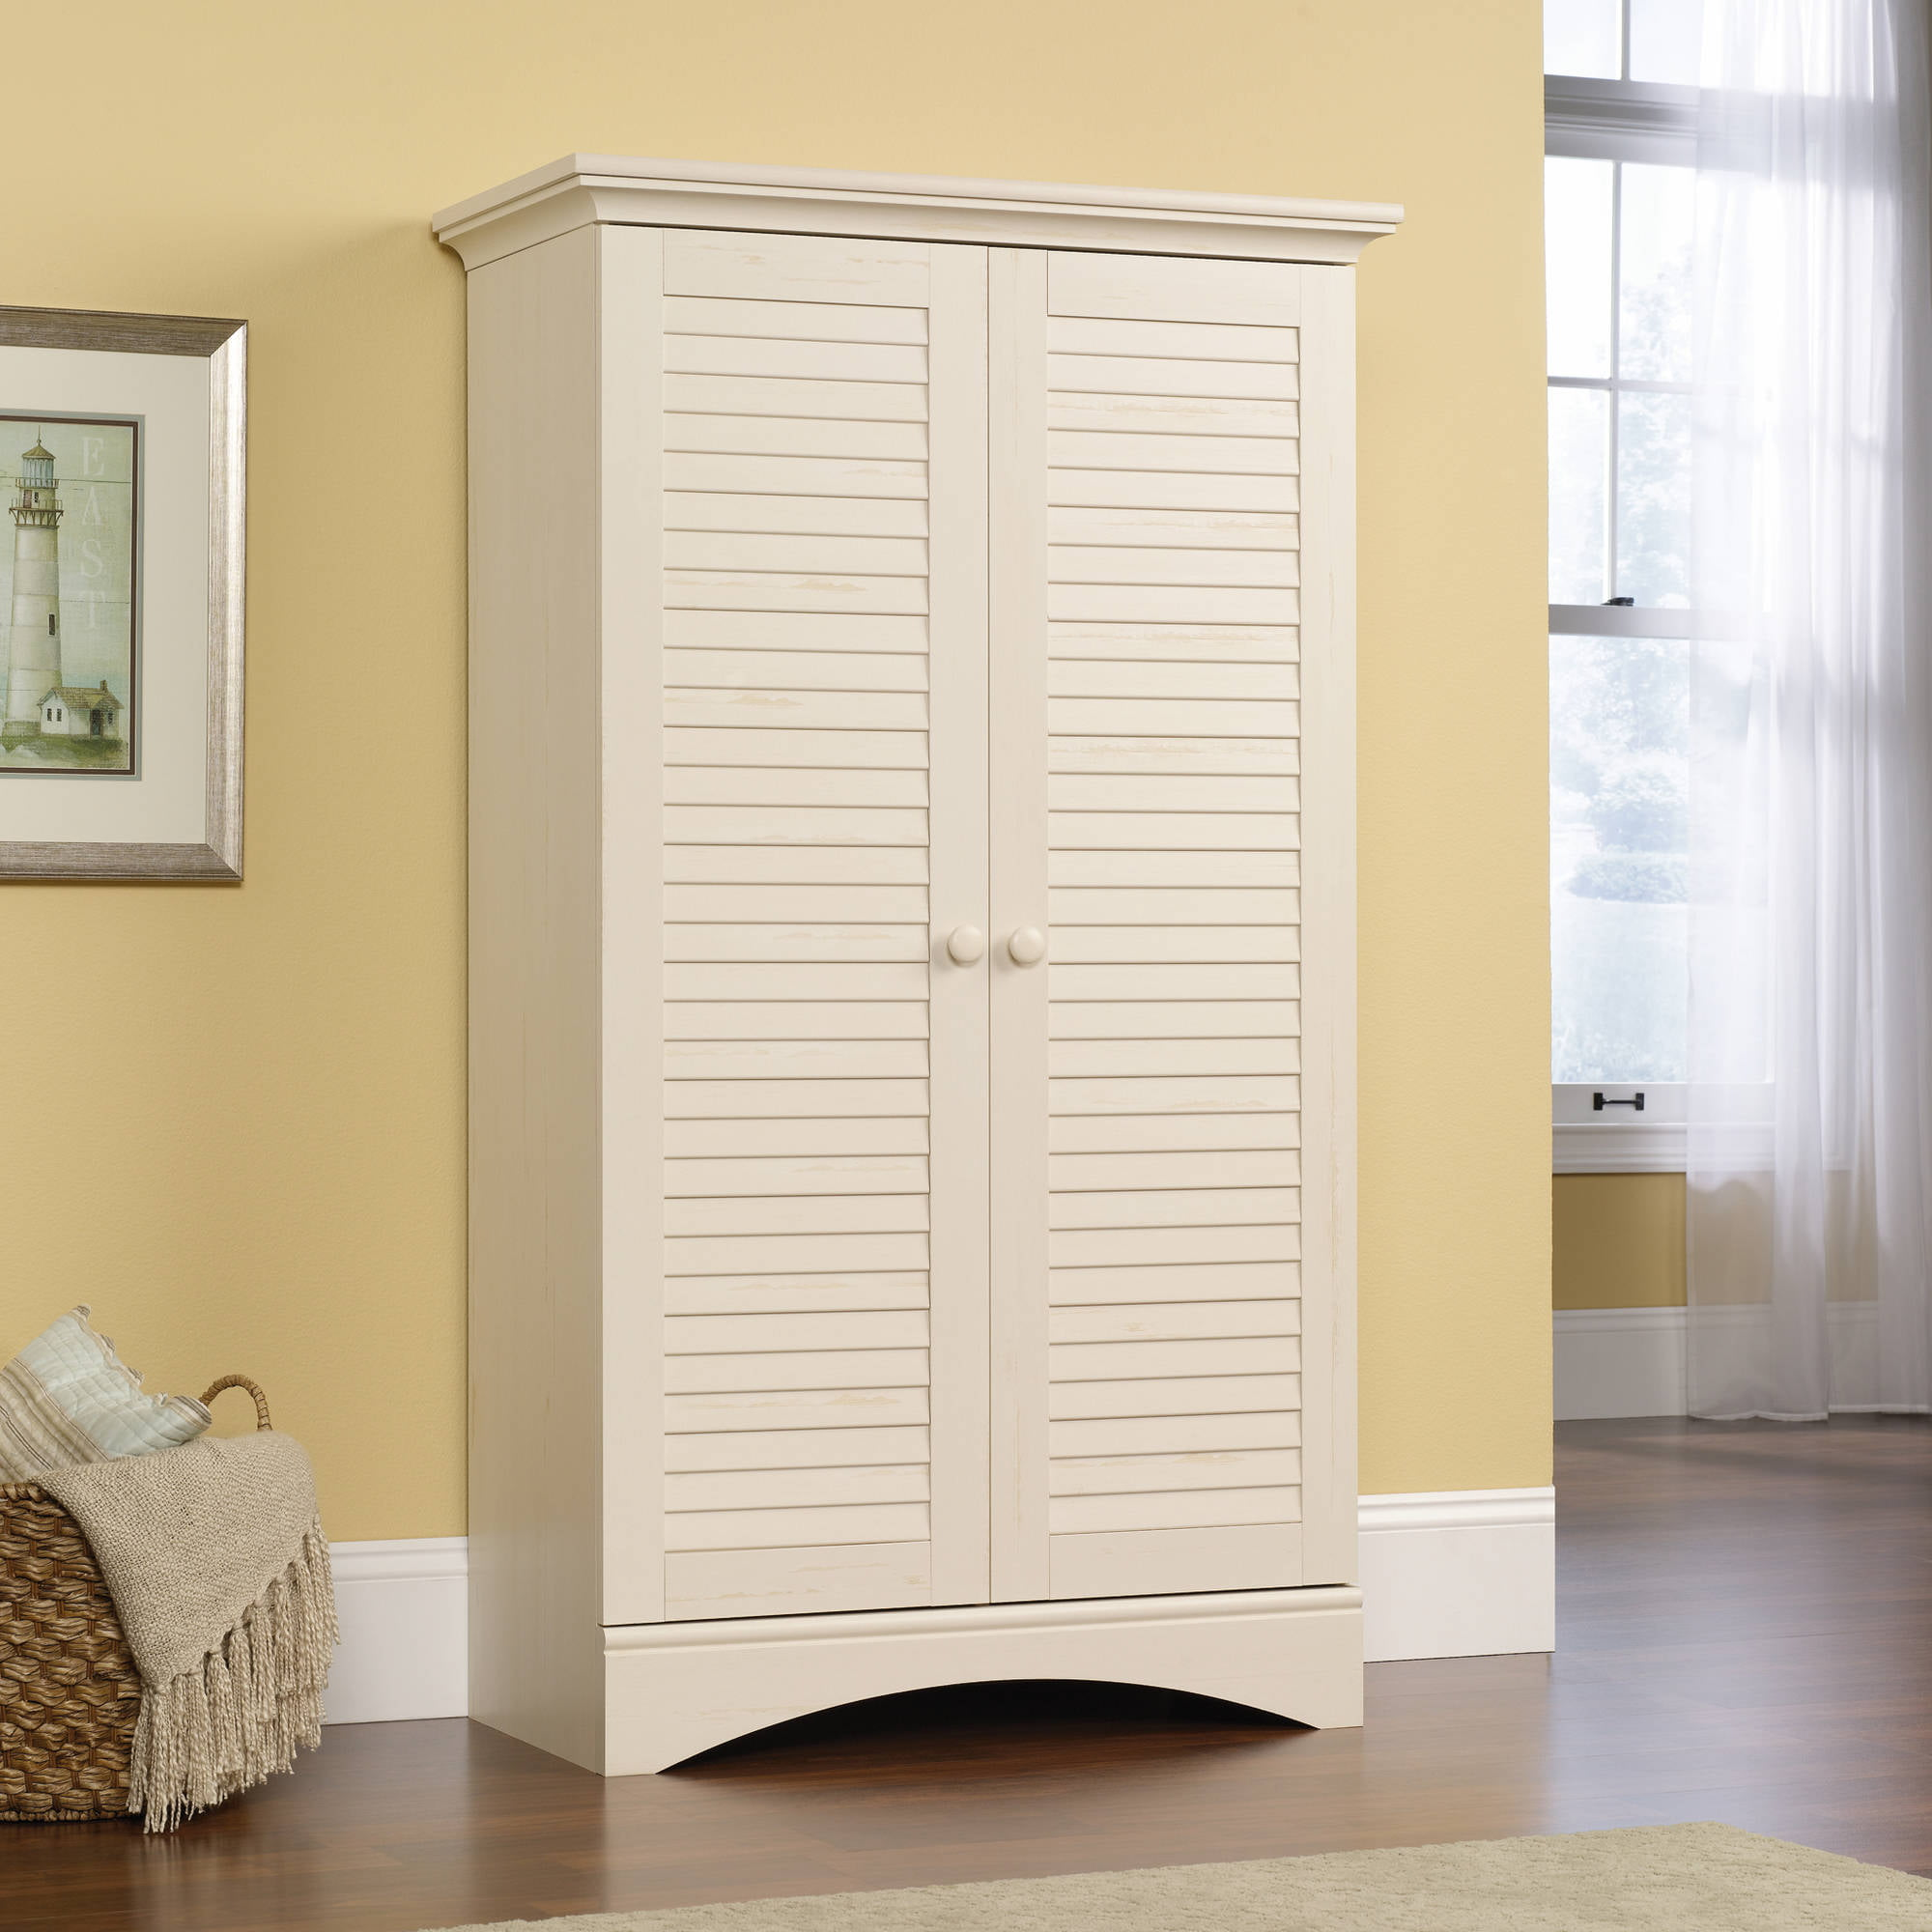 & Sauder Harbor View Storage Cabinet Multiple Colors - Walmart.com